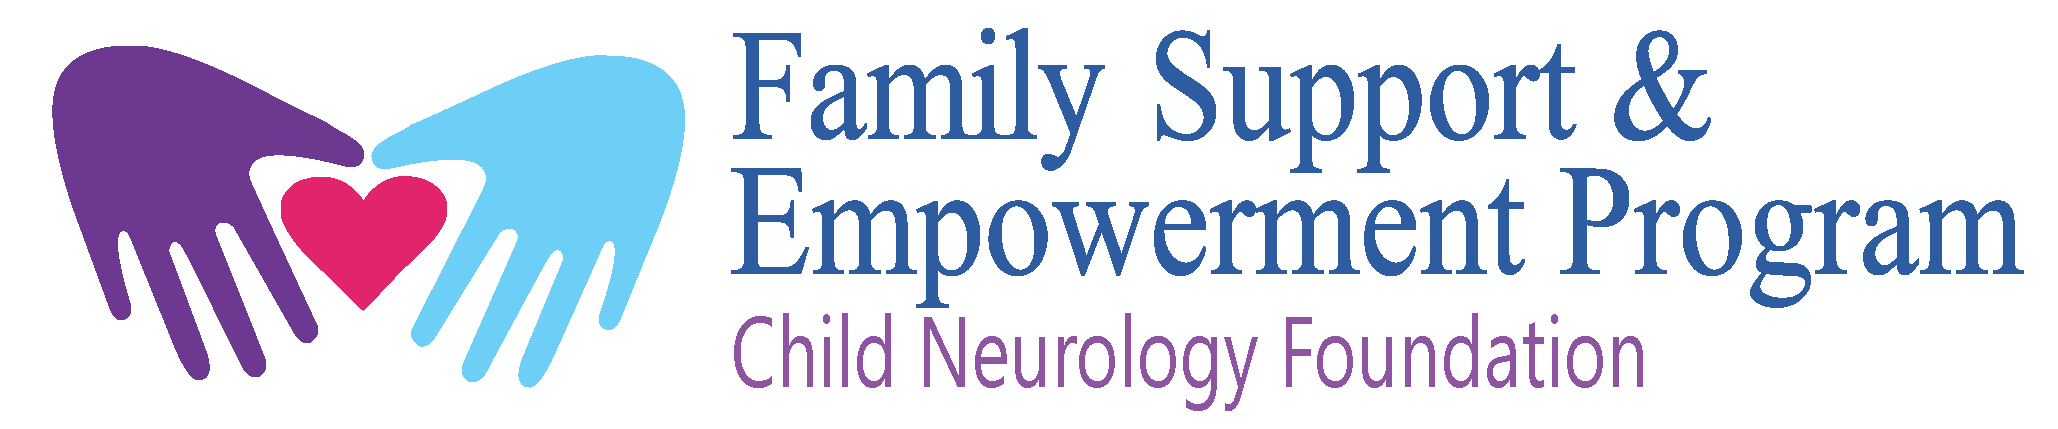 family support empowerment program fsep child neurology foundation